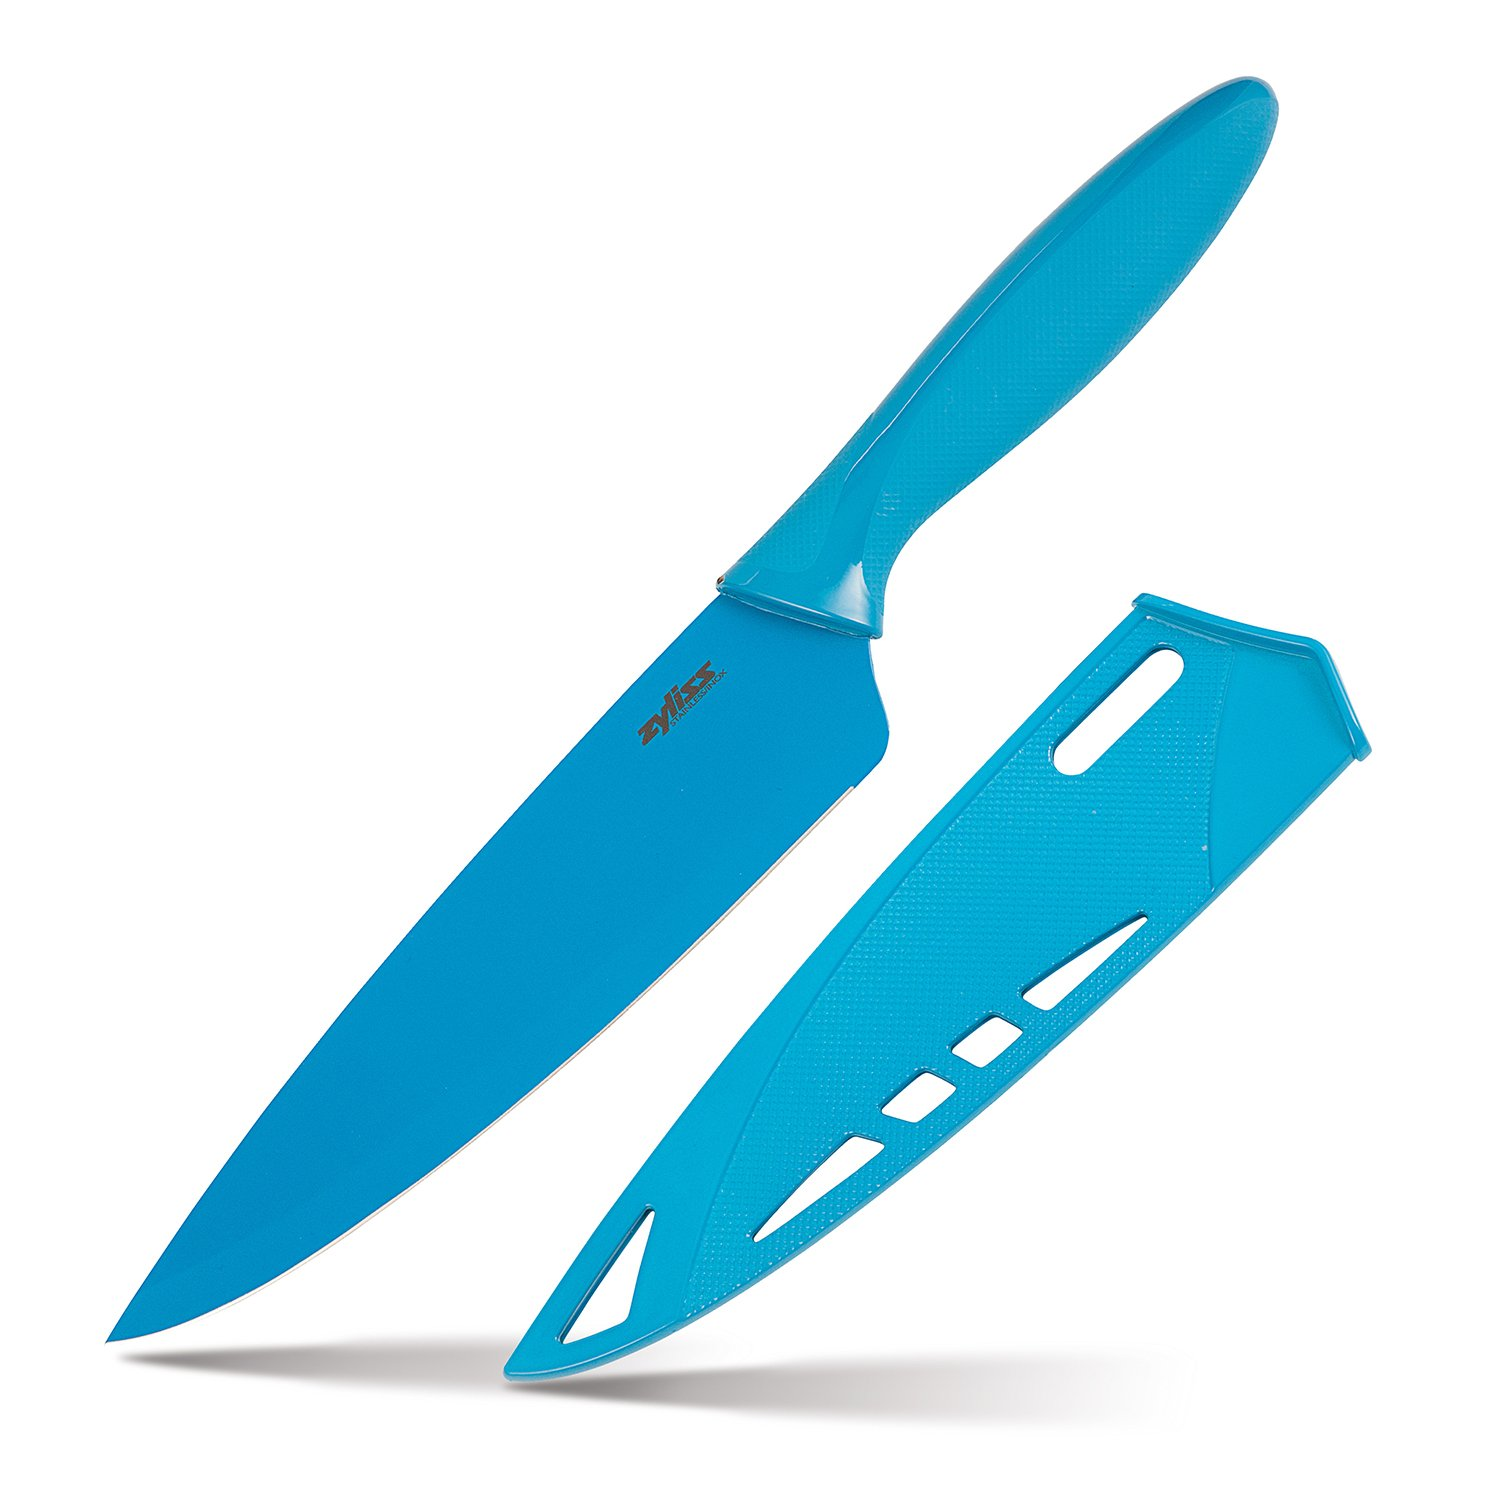 Amazon.com: ZYLISS Chef\'s Knife with Sheath Cover, 7.5-Inch Non ...